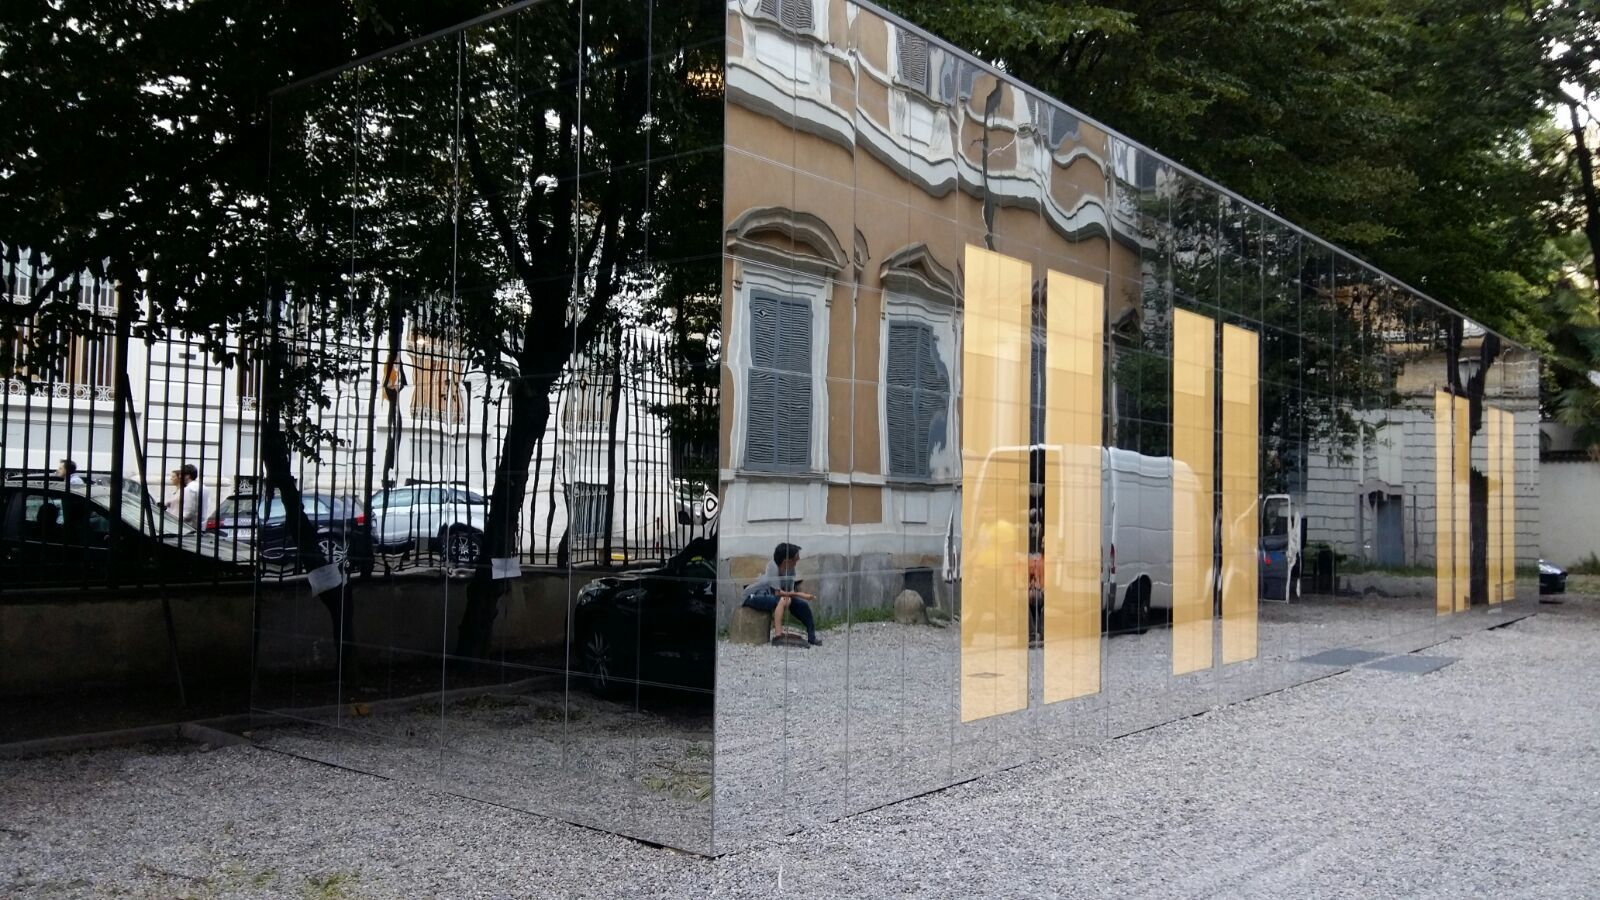 dc6273e3f2e4 The amazing  temporary  showroom made by Fusina for  OffWhite in  Milano  reassembled in  Milan (project  Family New York)  lightarchitecture   mirroreffect   ...